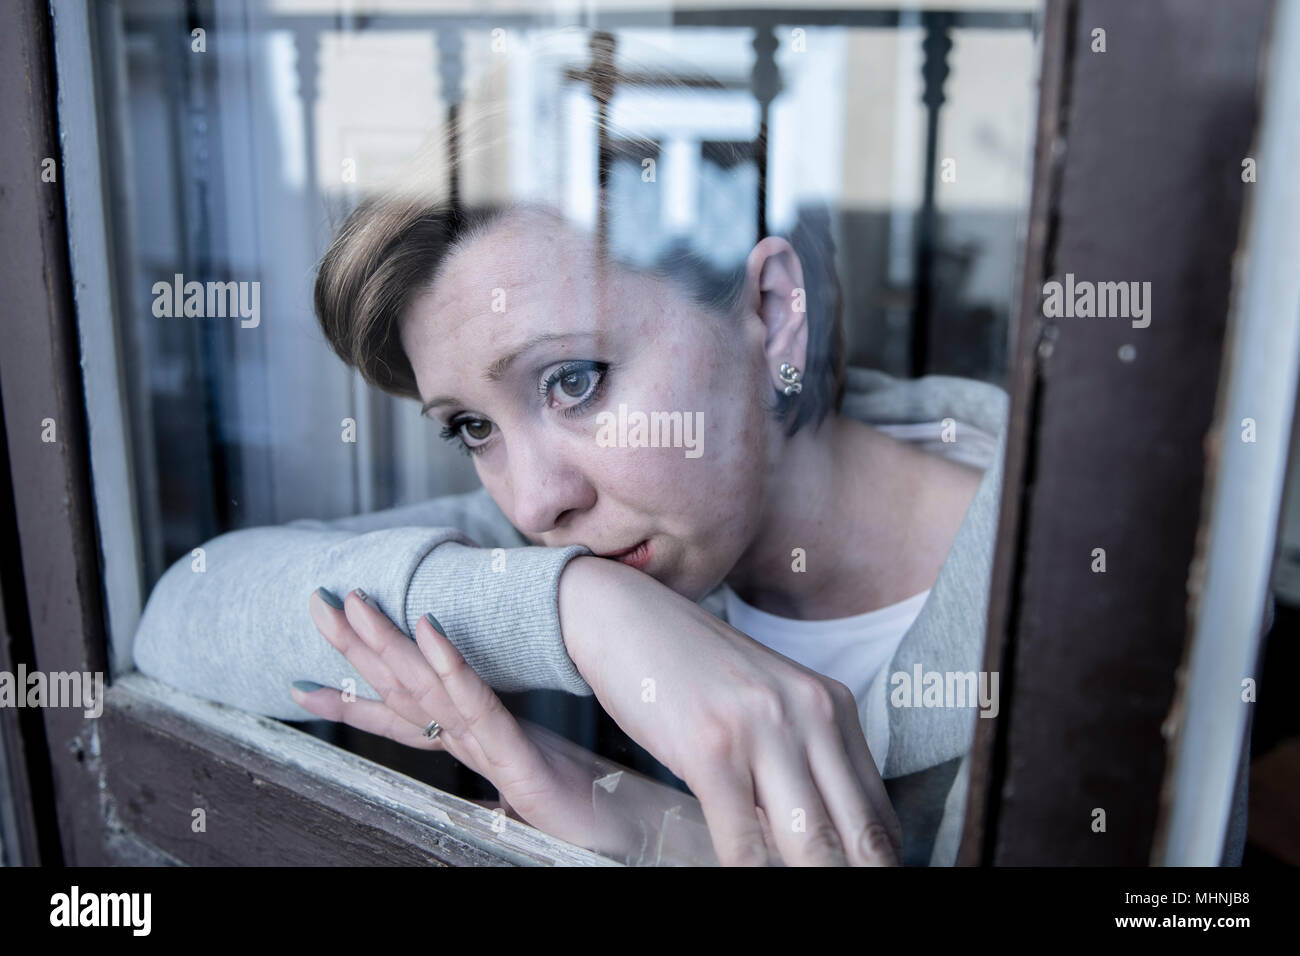 young beautiful depressed unhappy caucasian woman looking worried and sad through the window at home. feeling worthless and in pain. closeup. Depressi - Stock Image